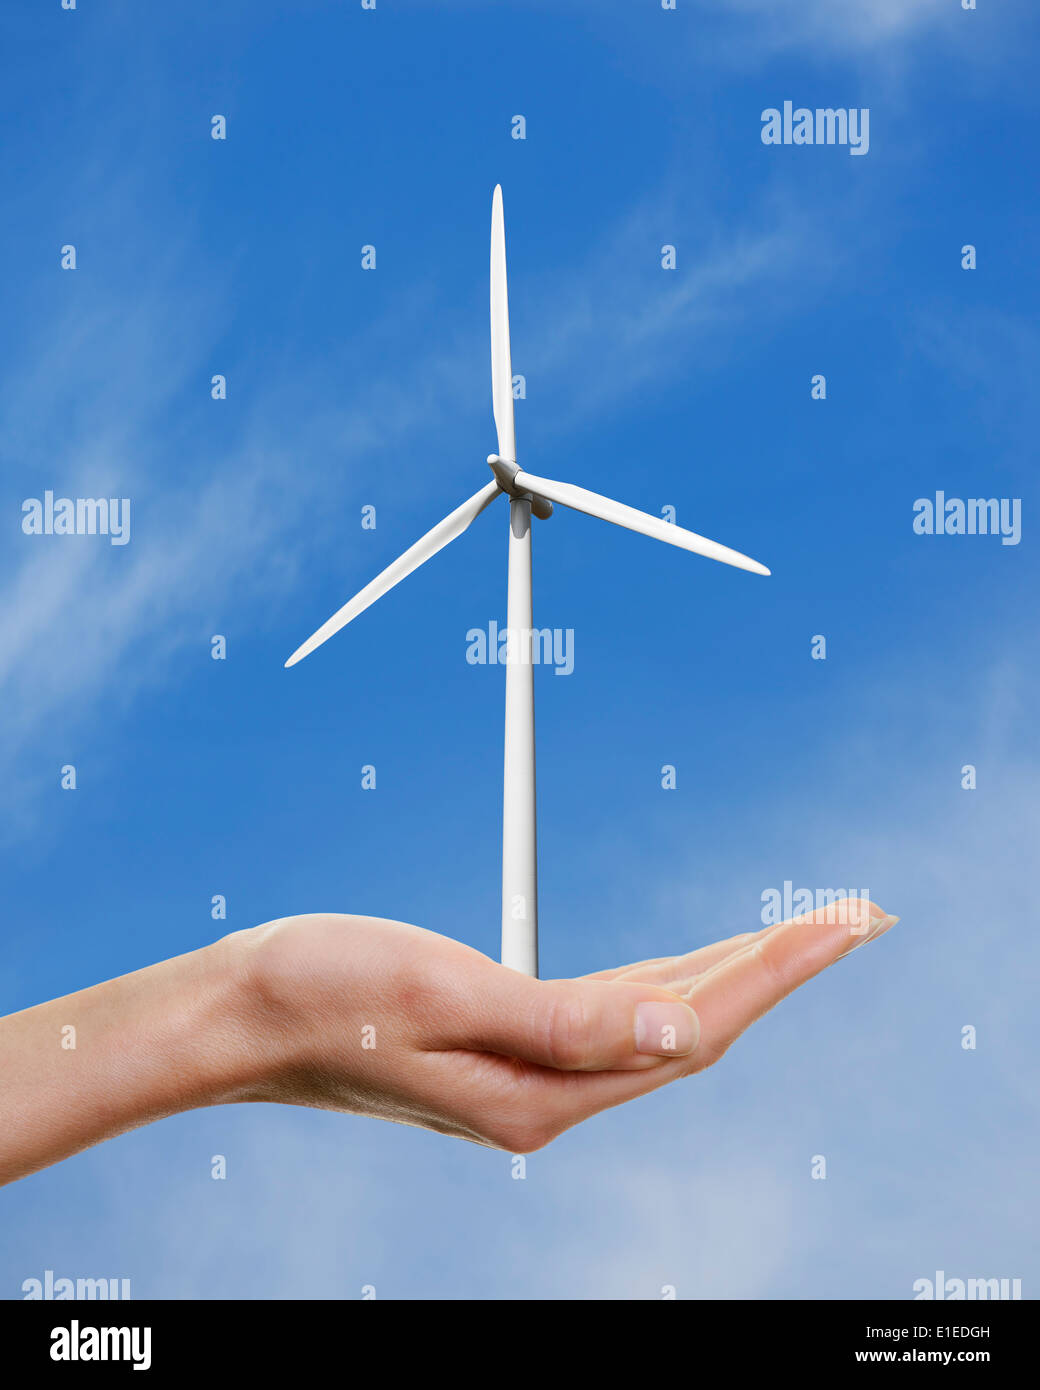 Womans Hand Holding a Wind Turbine against a Blue Sky. - Stock Image